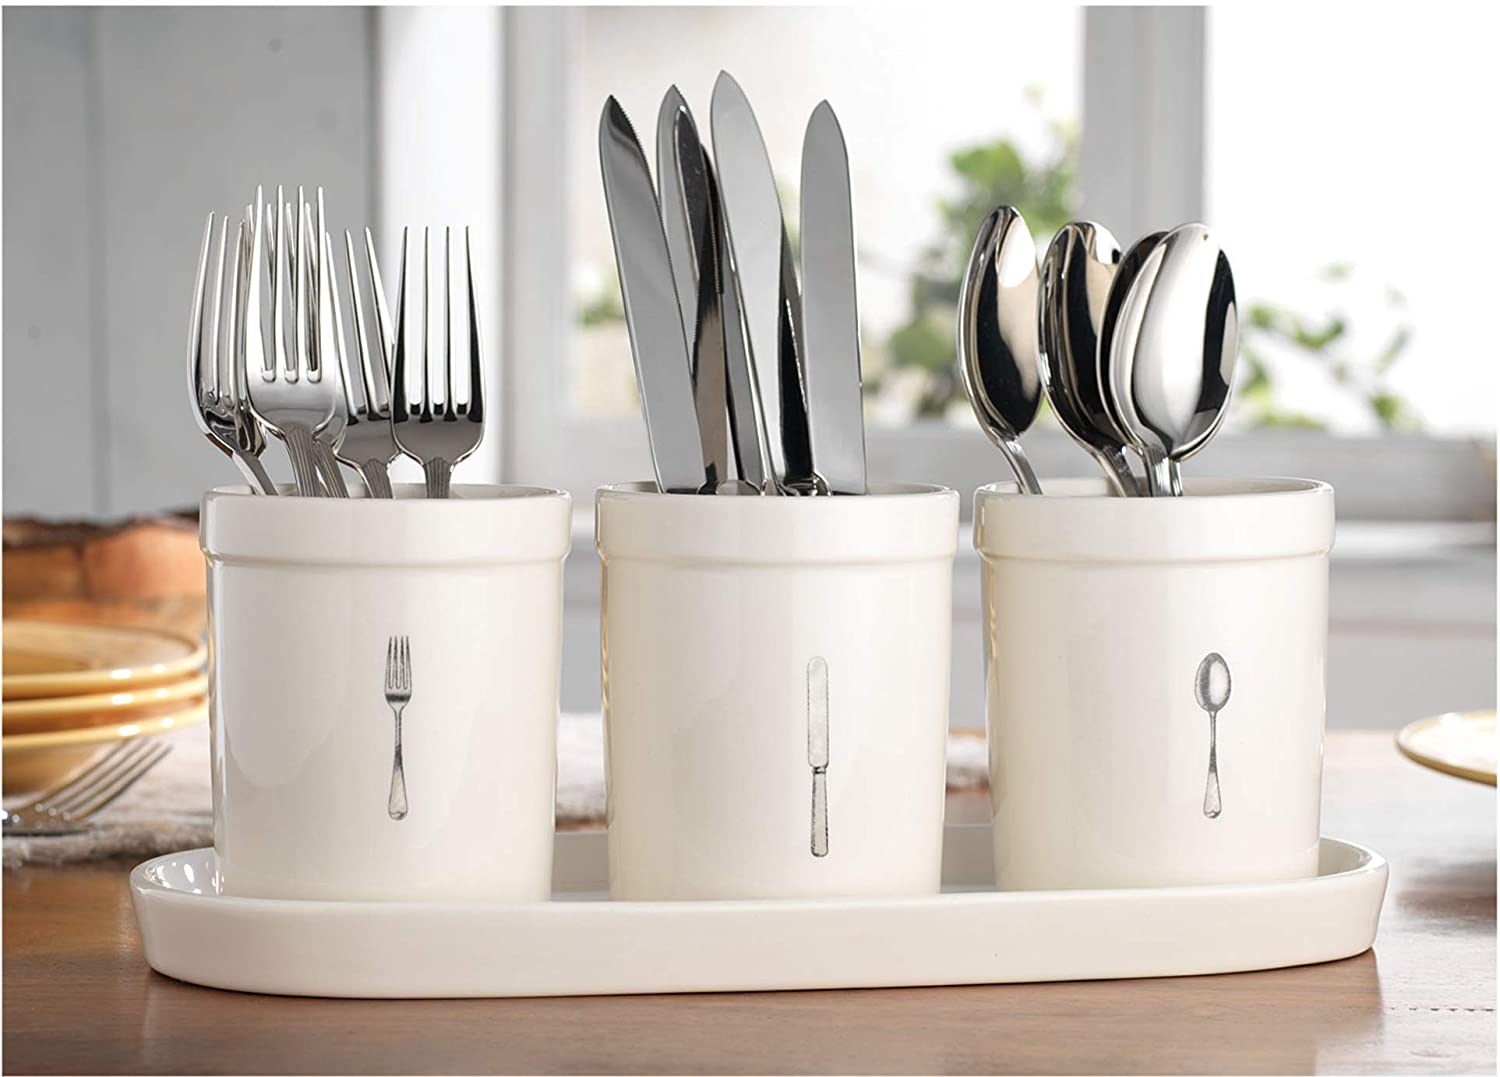 Kitchen Utensil Cutlery Organizer, Holds Napkins, Forks, Spoons, Spatula, Vintage Style Caddy Silverware Holder For Kitchen Countertop Storage, Ceramic Utensil Caddy Centerpiece